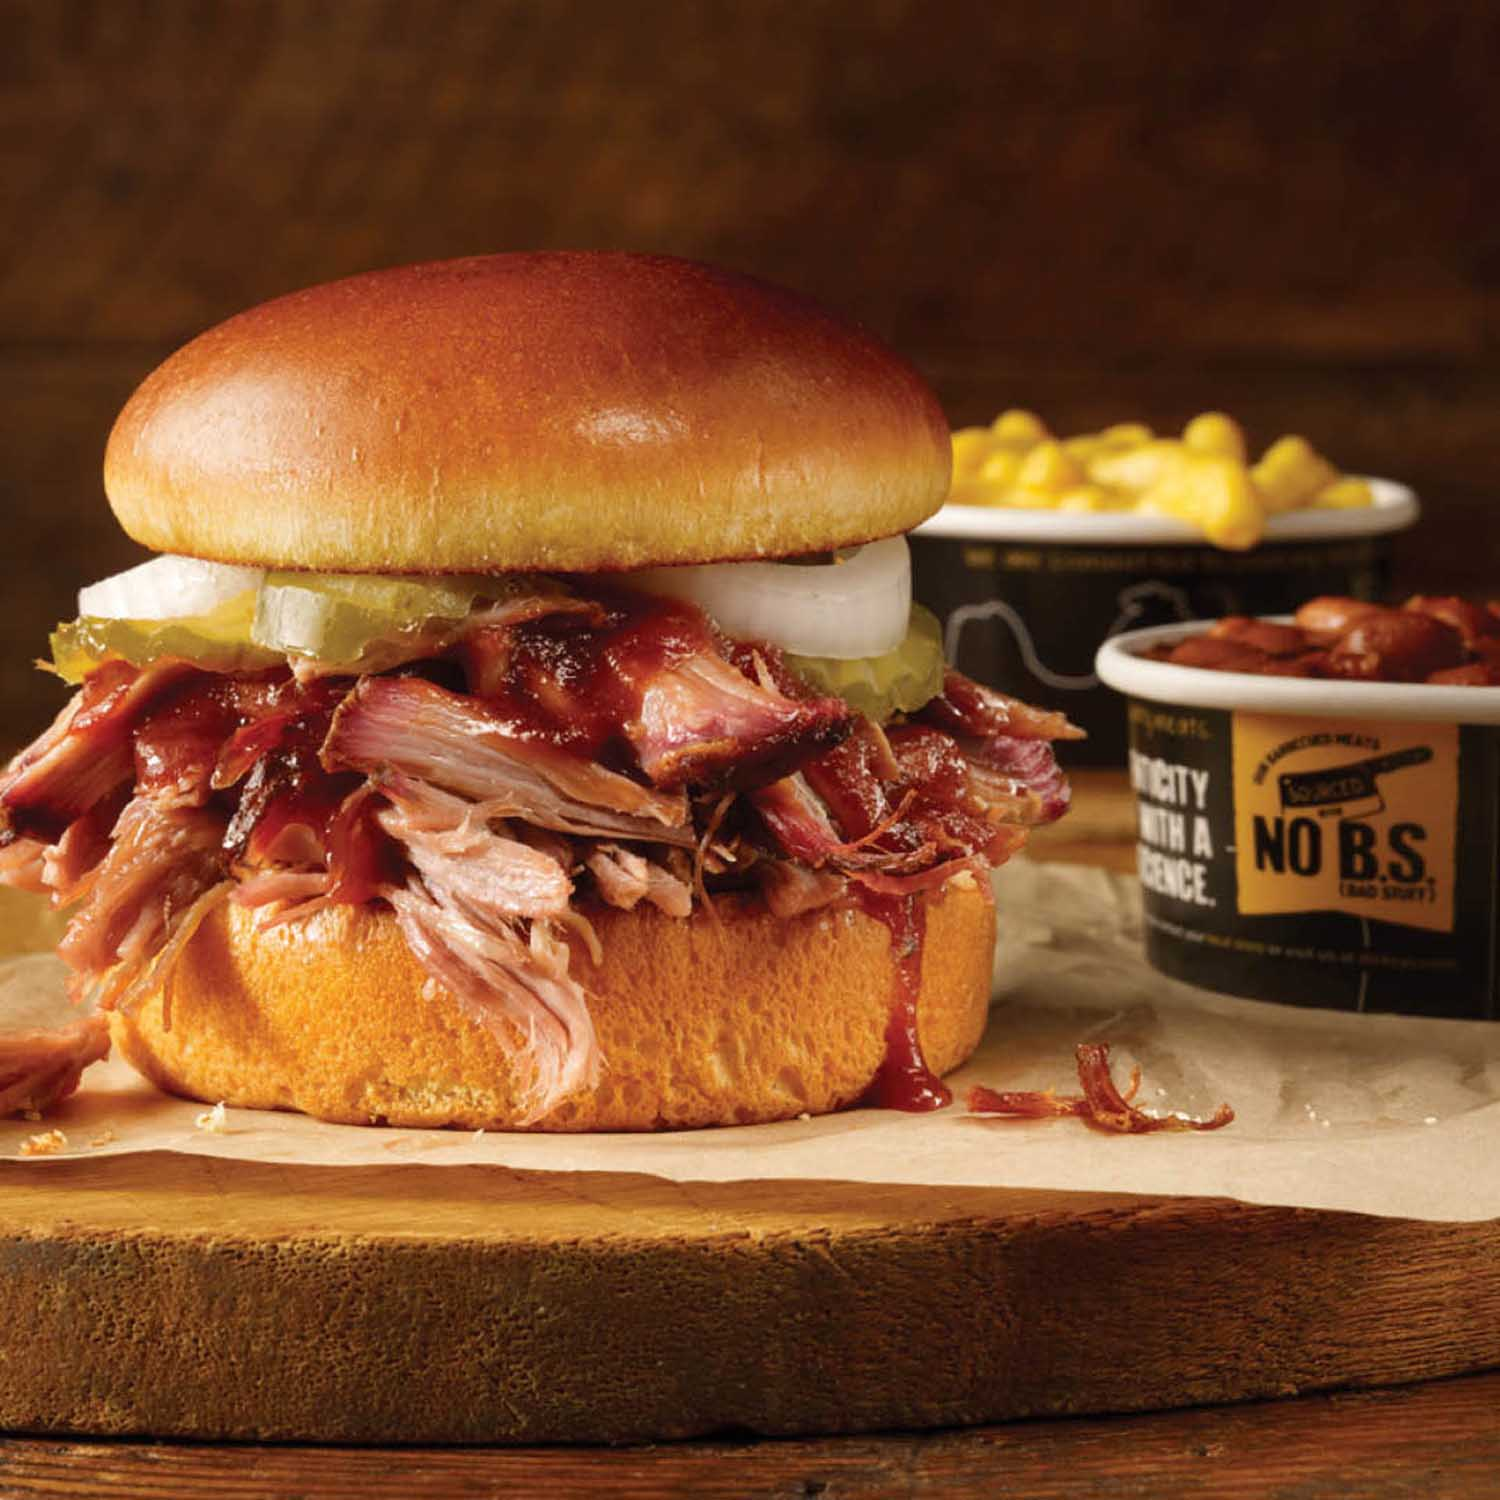 Franchising.com:  Local Restaurateurs Bring Dickey's Barbecue Pit to Bowie, TX